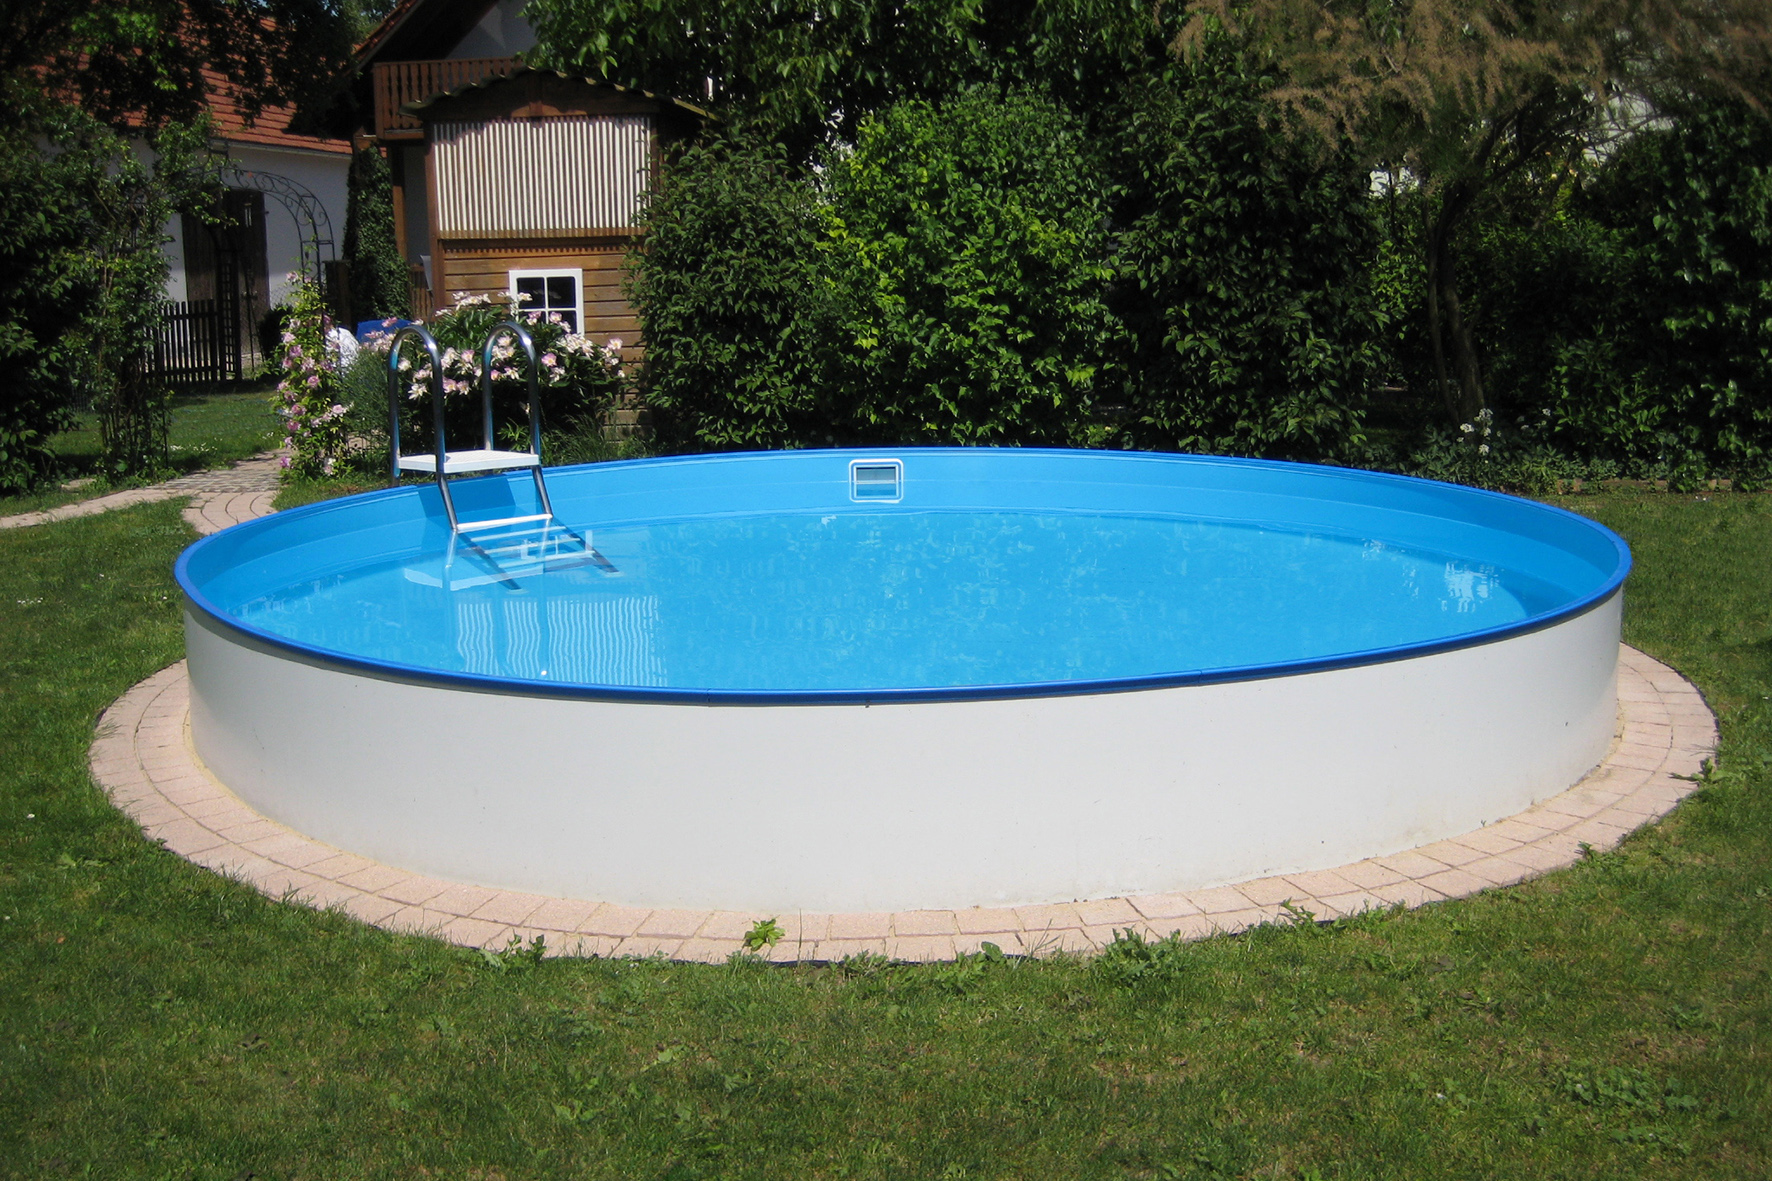 Planet Pool Rundbecken Exklusiv Ø 200x120cm (SW:0,6 IH:0,6)